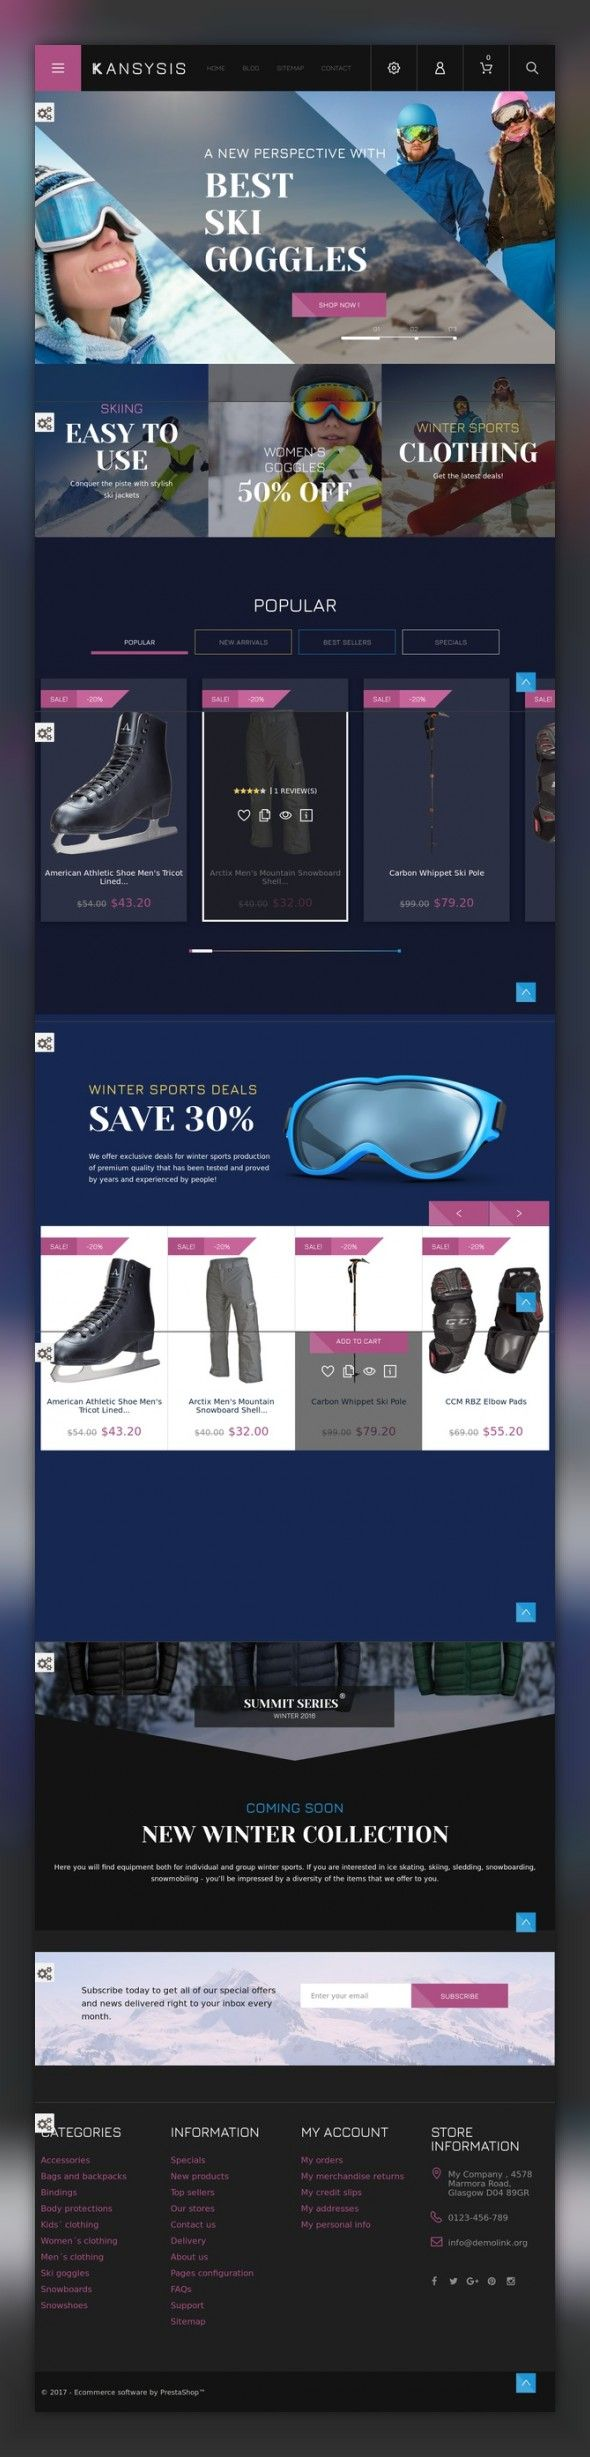 Kansysis - Sport Clothing & Equipment PrestaShop Theme E-commerce Templates, PrestaShop Themes, Sports, Outdoors & Travel, Sport Templates, Sports Store Templates Searching for a template with unique design and innovative online store functionality? Pick Sports Gear PrestaShop Theme with theme color switcher, product quick view, cloud zoom, categories accord...